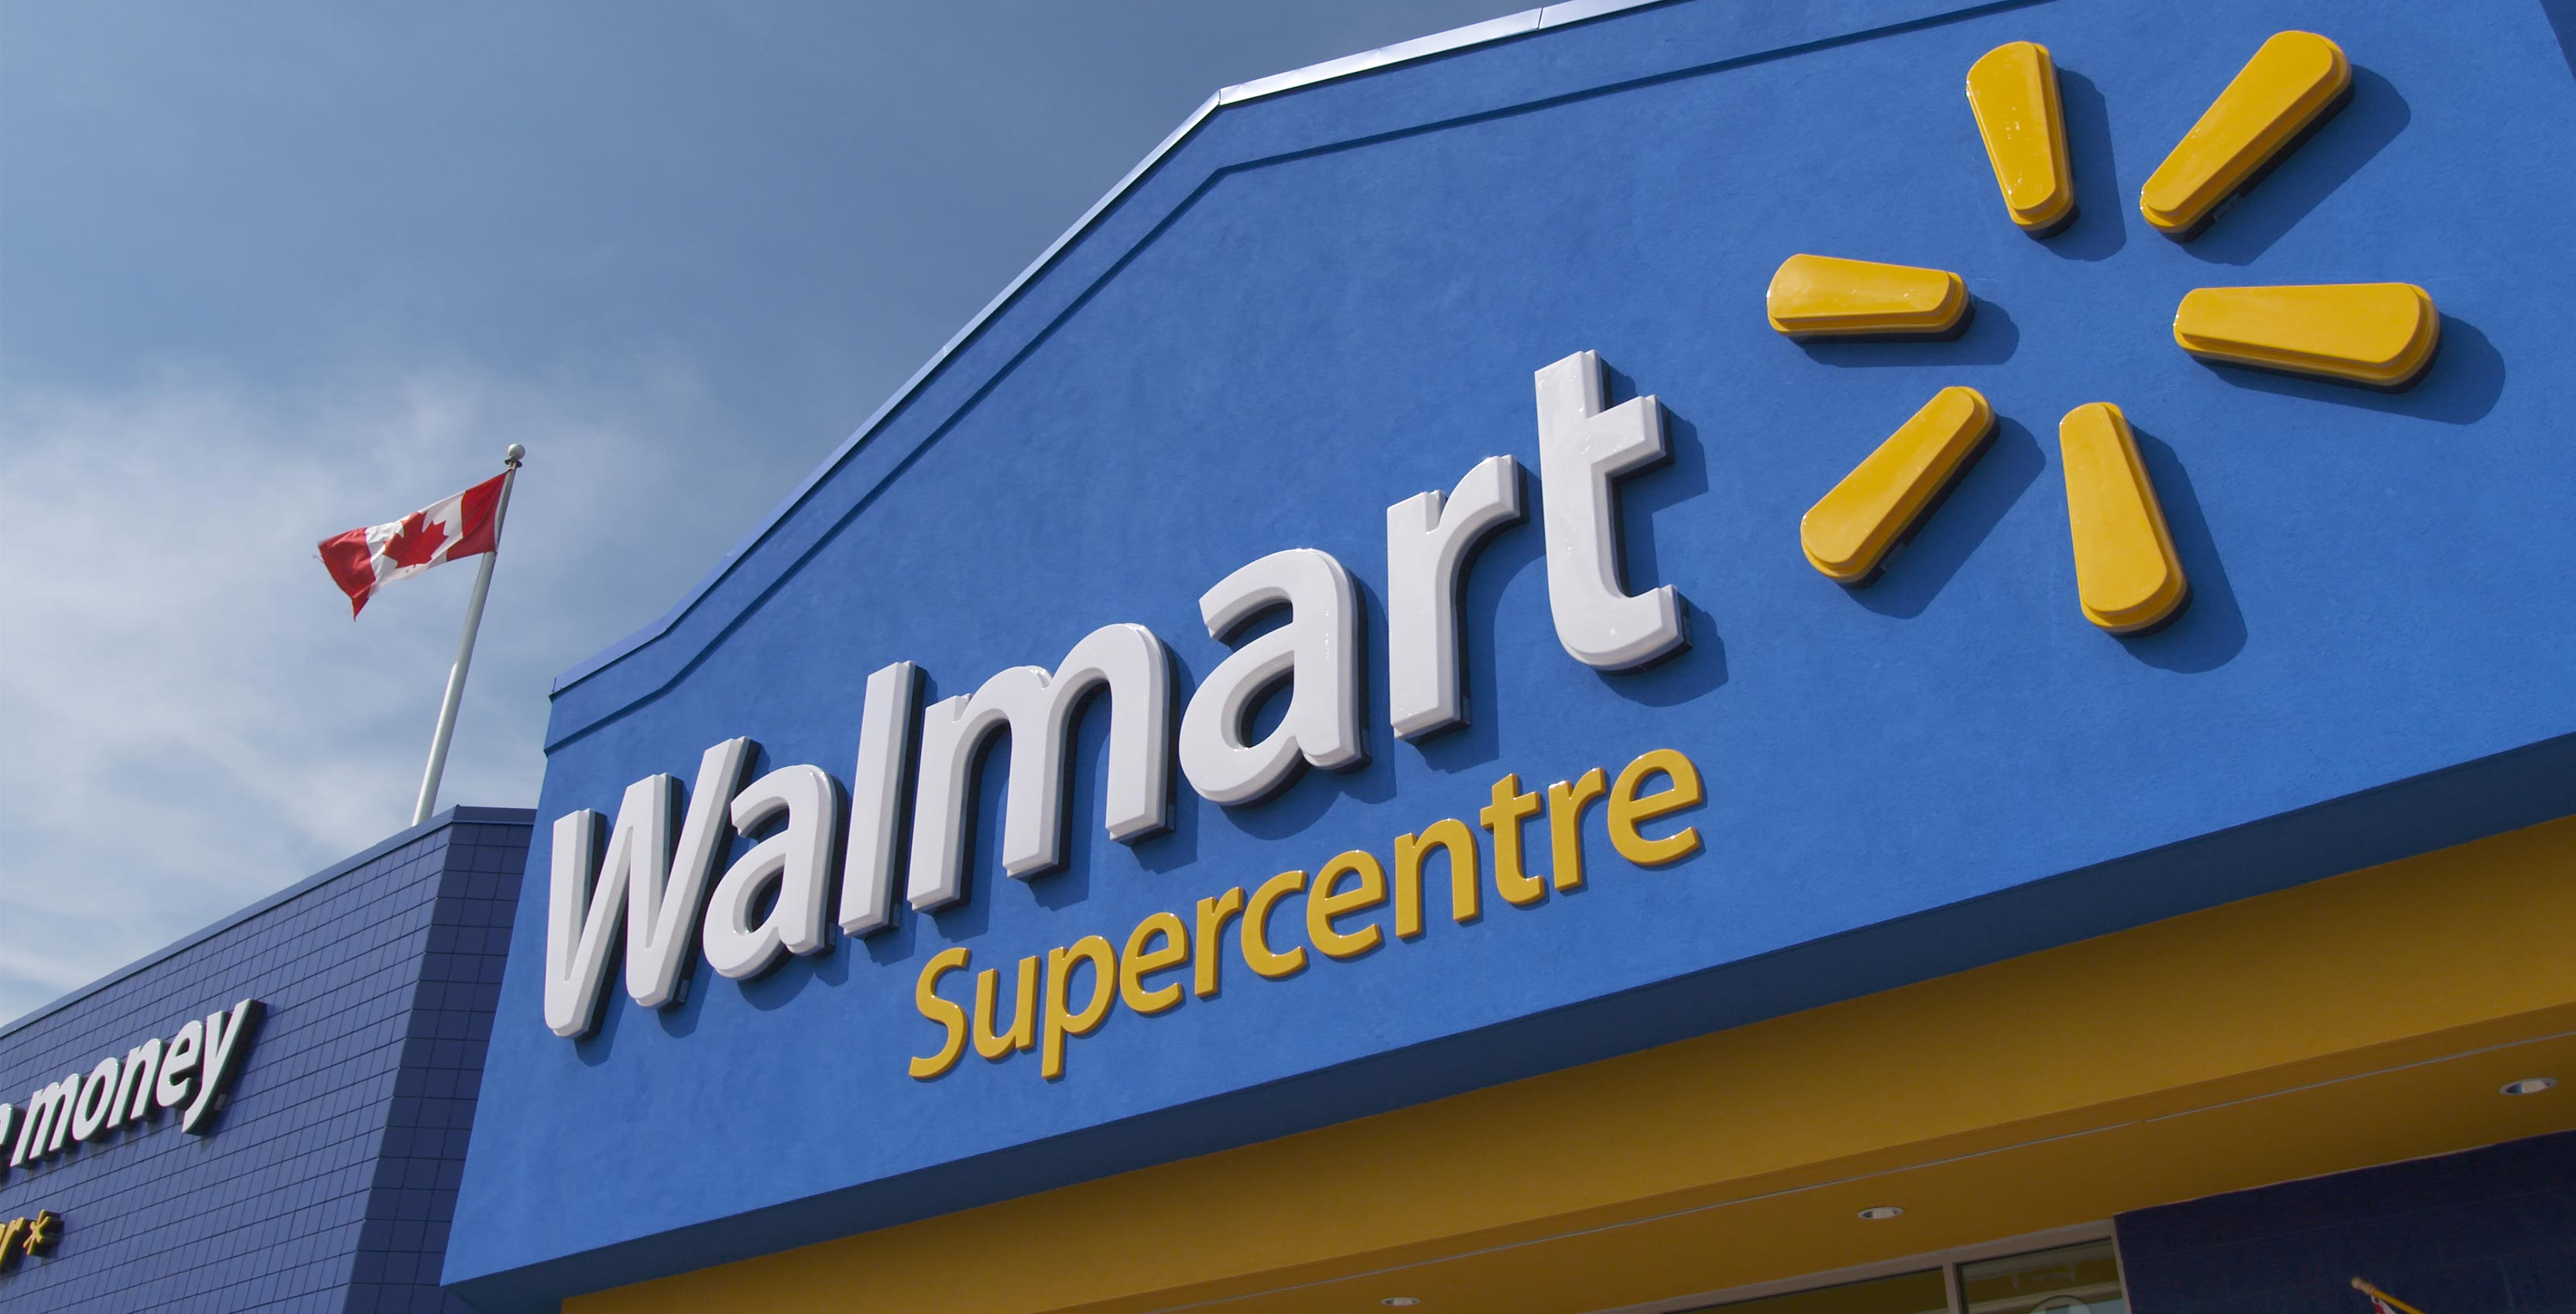 37b8da0cf8 Walmart s Canadian arm has announced plans to renovate 23 stores in an  effort to better appeal to a wider variety of customers.